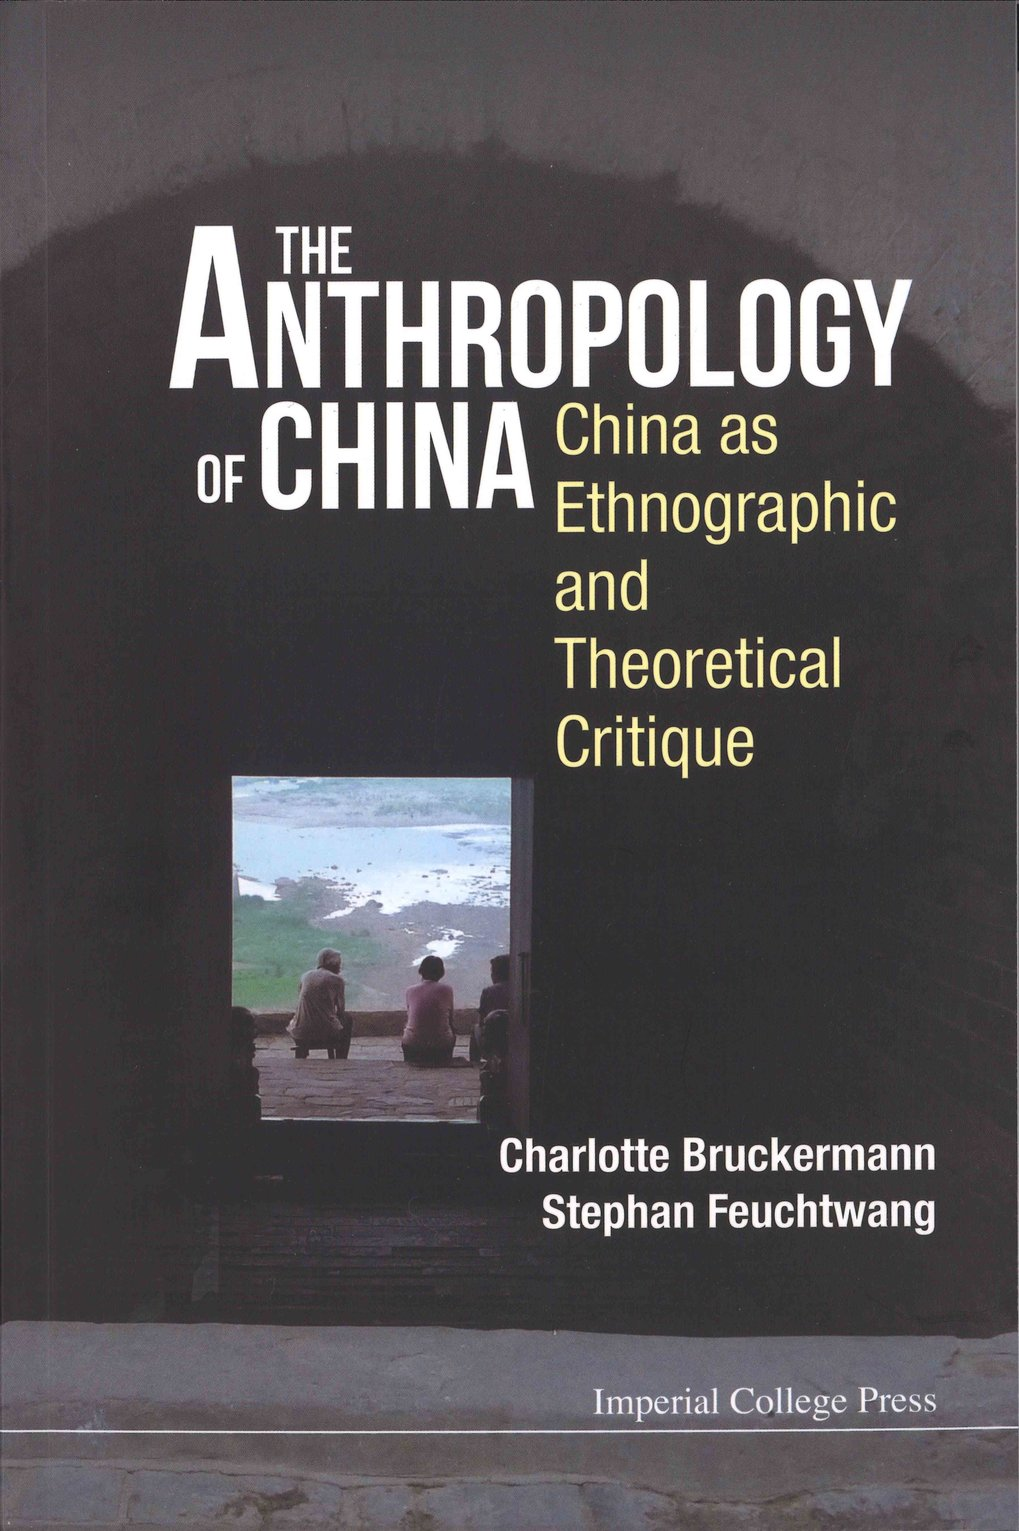 The Anthropology of China. China as ethnographic and theoretical critique